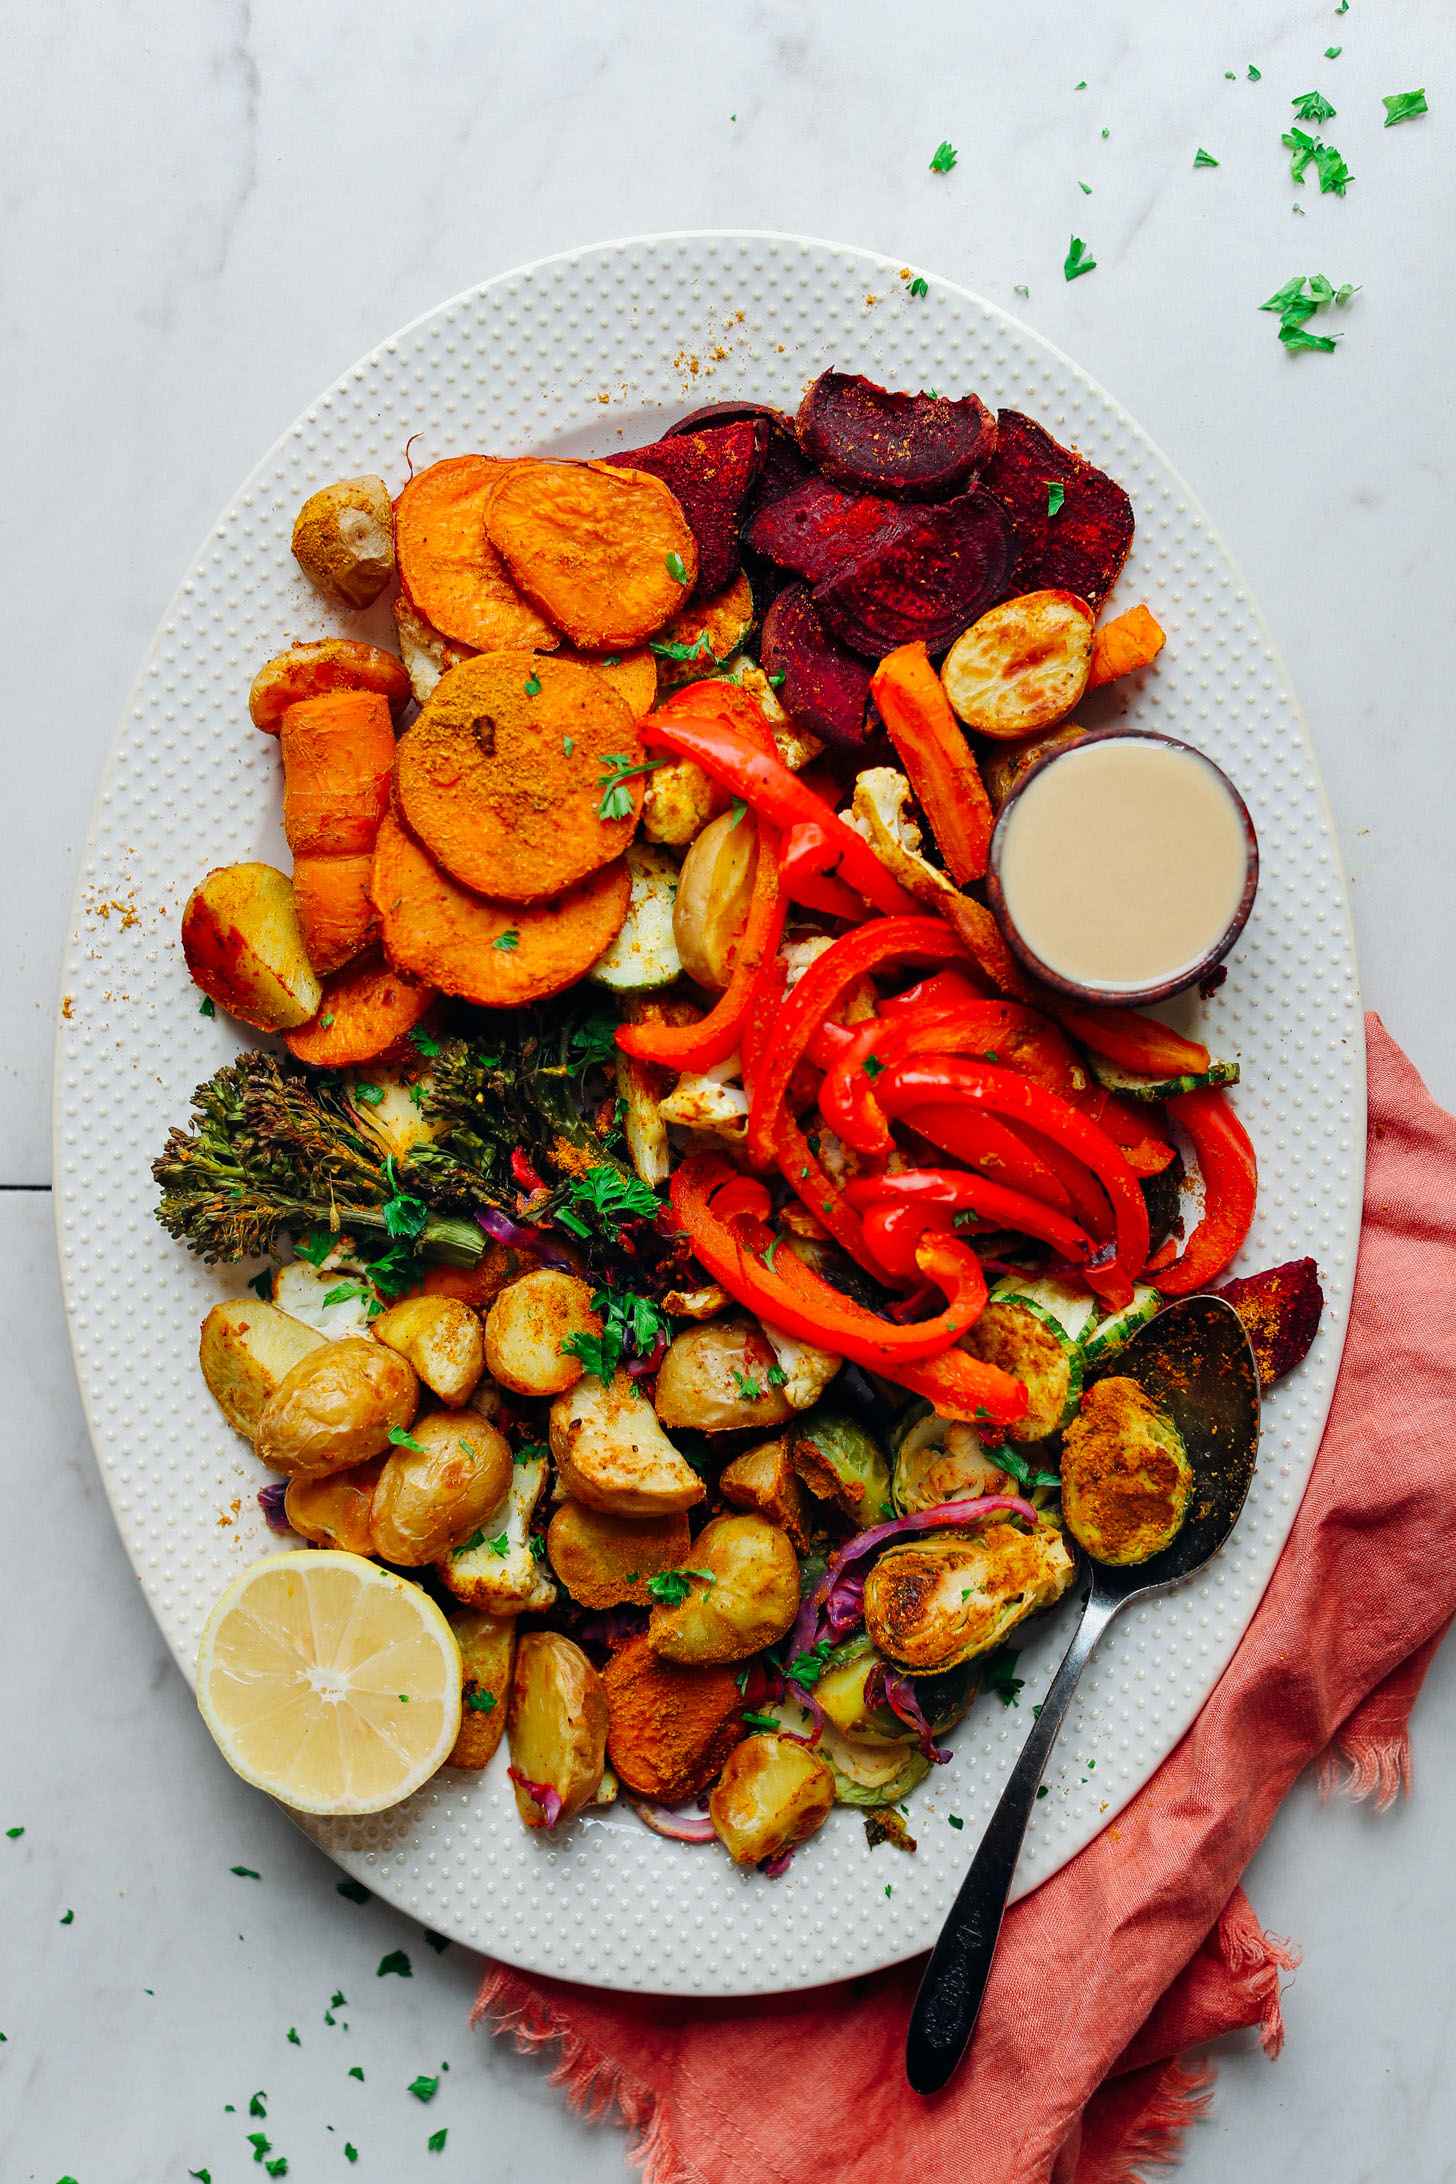 Platter of Oil-Free Roasted Vegetables with tahini and lemon for serving